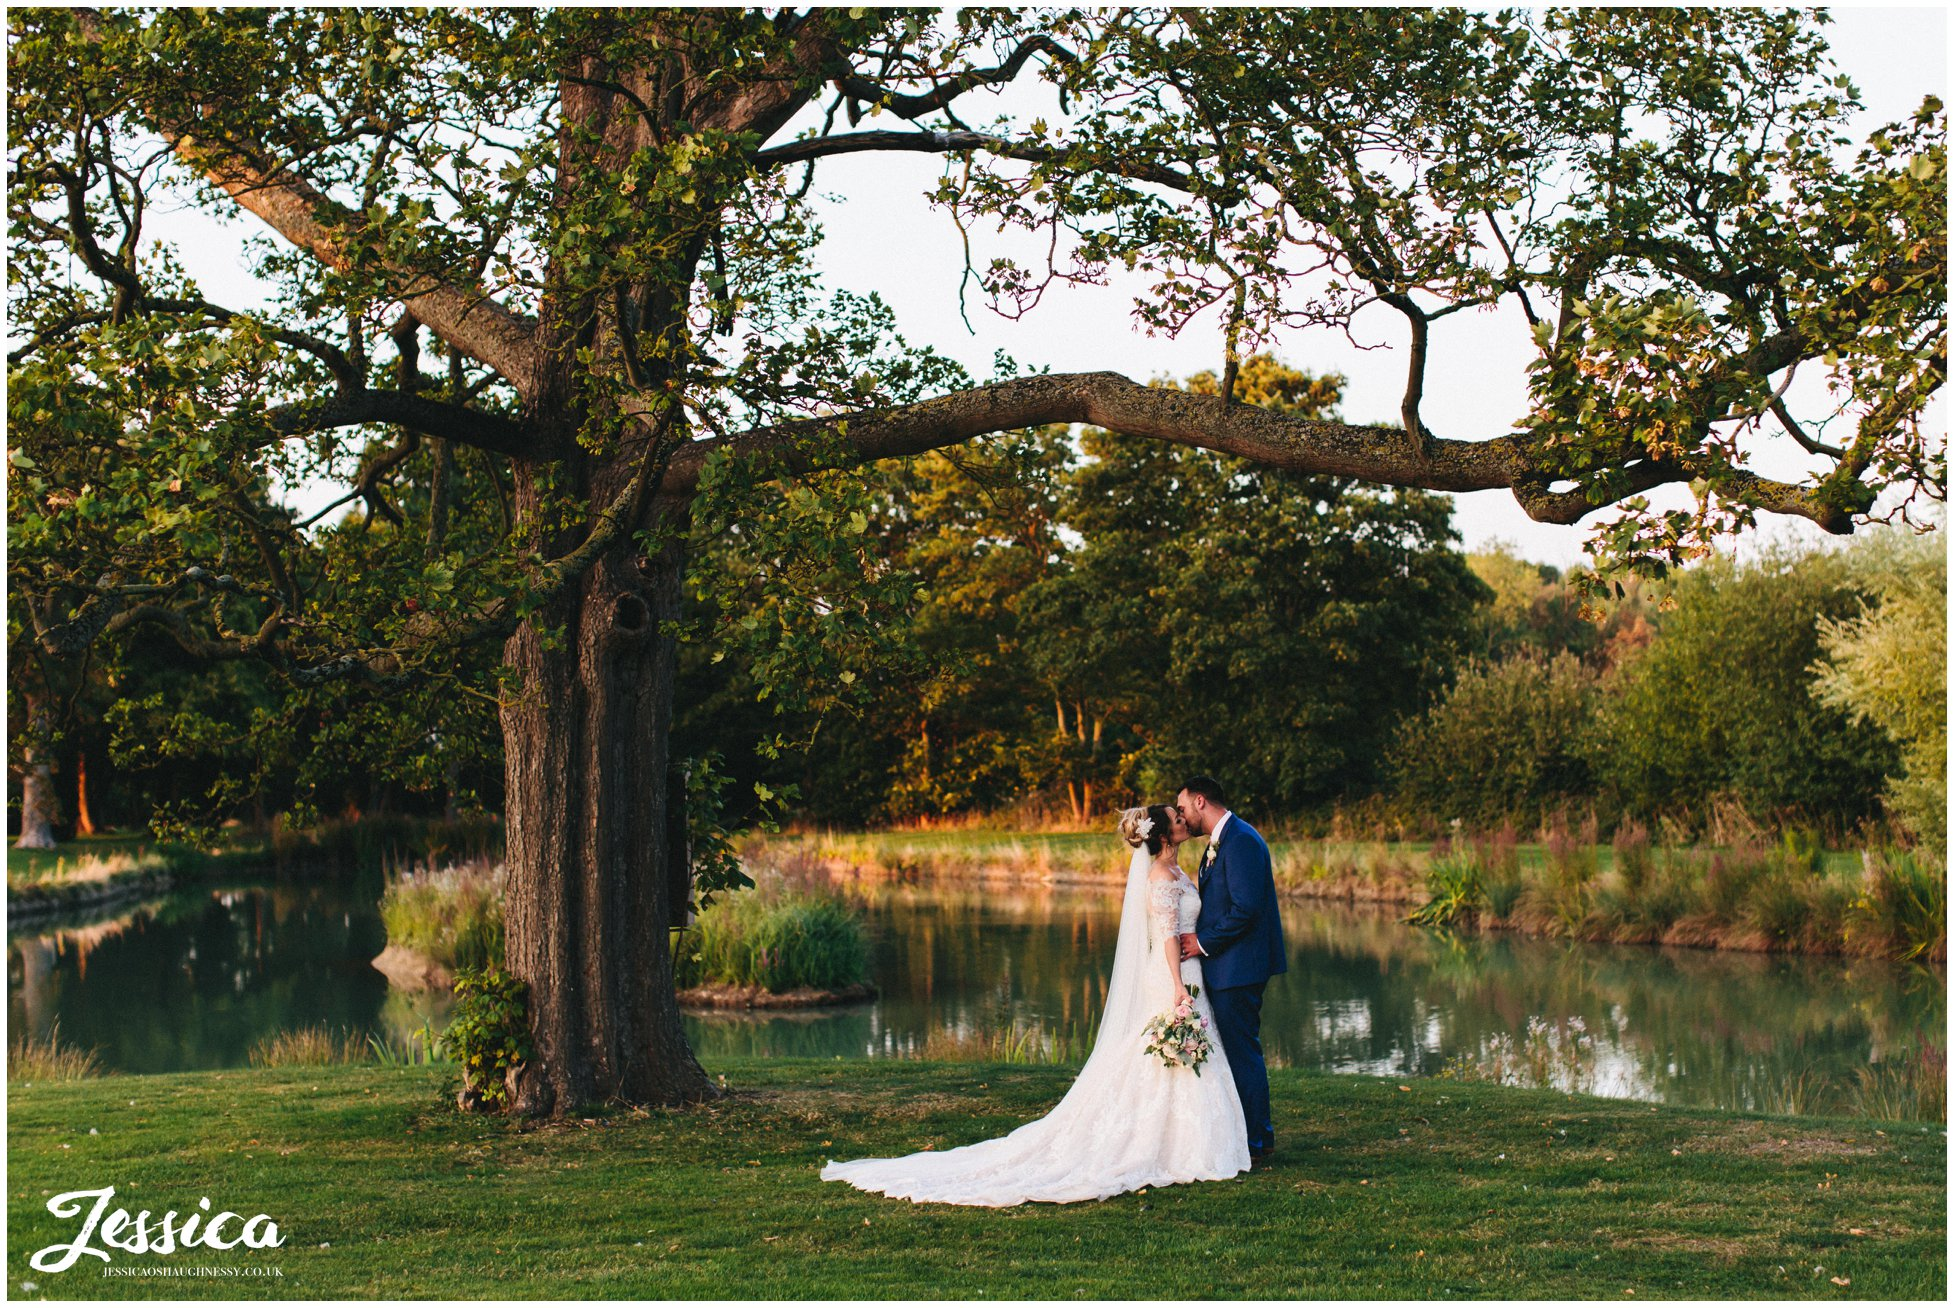 the newly wed's kiss by the lake